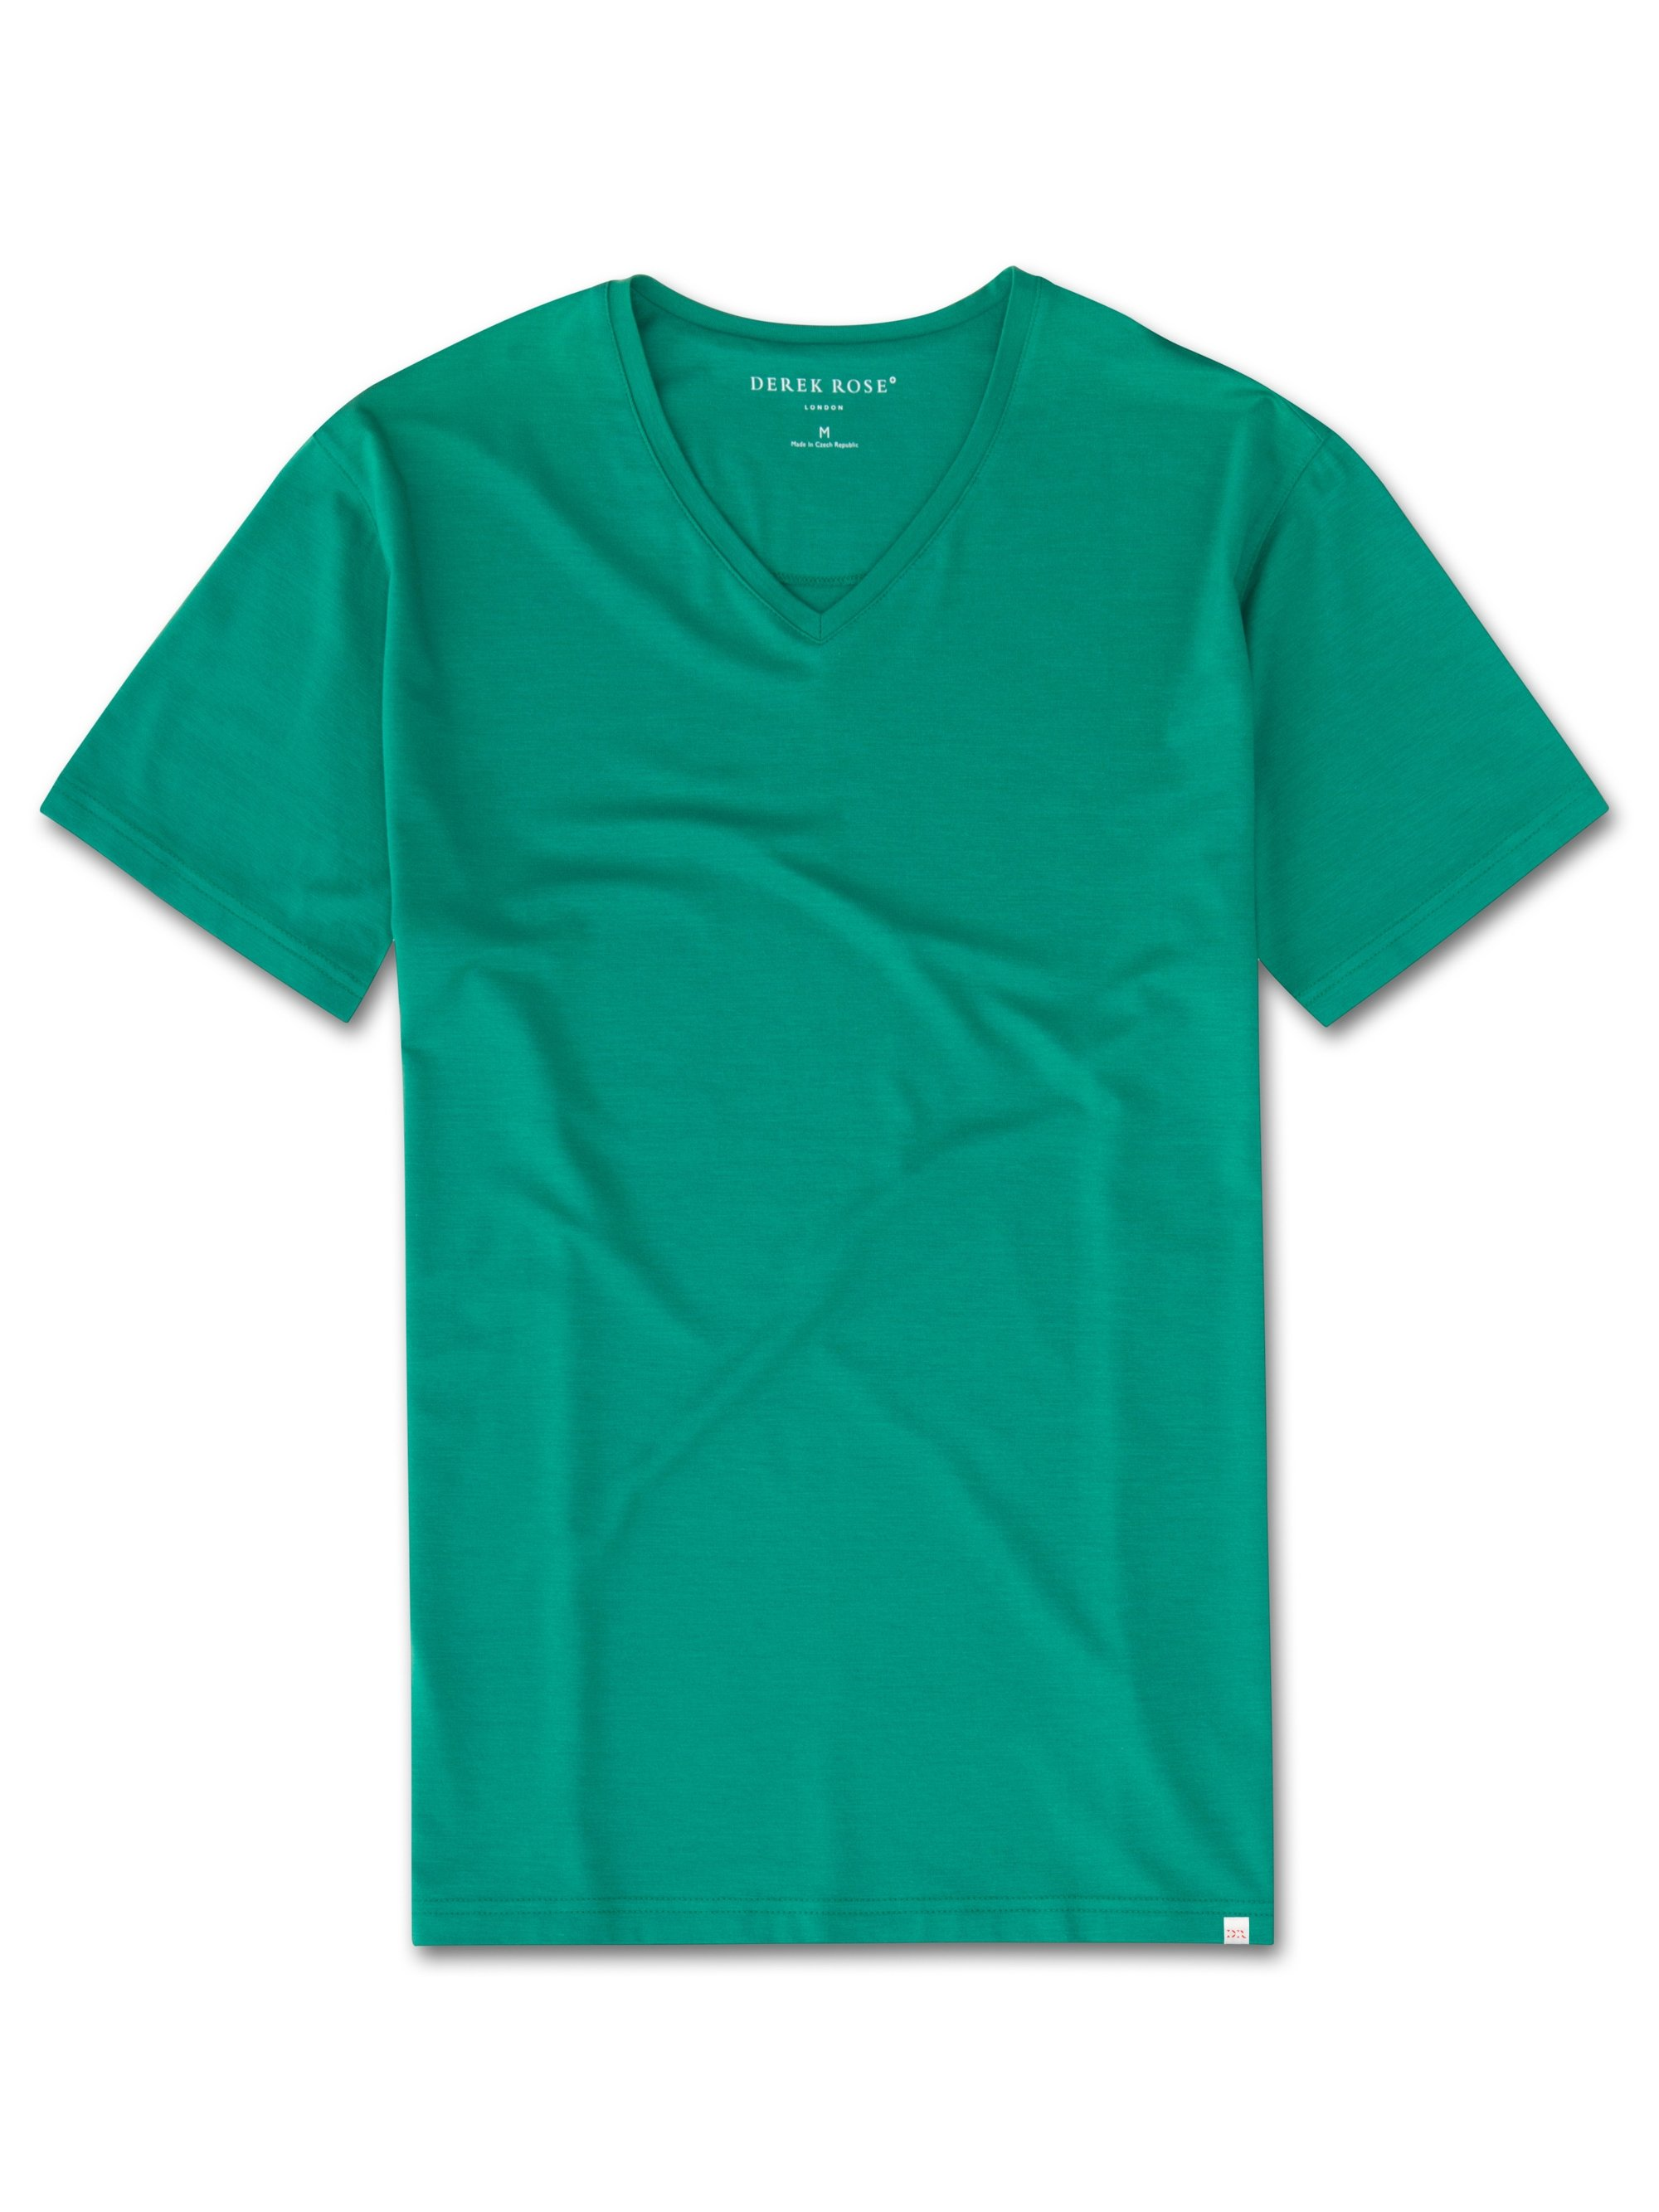 Men's Short Sleeve V-Neck T-Shirt Basel 6 Micro Modal Stretch Green